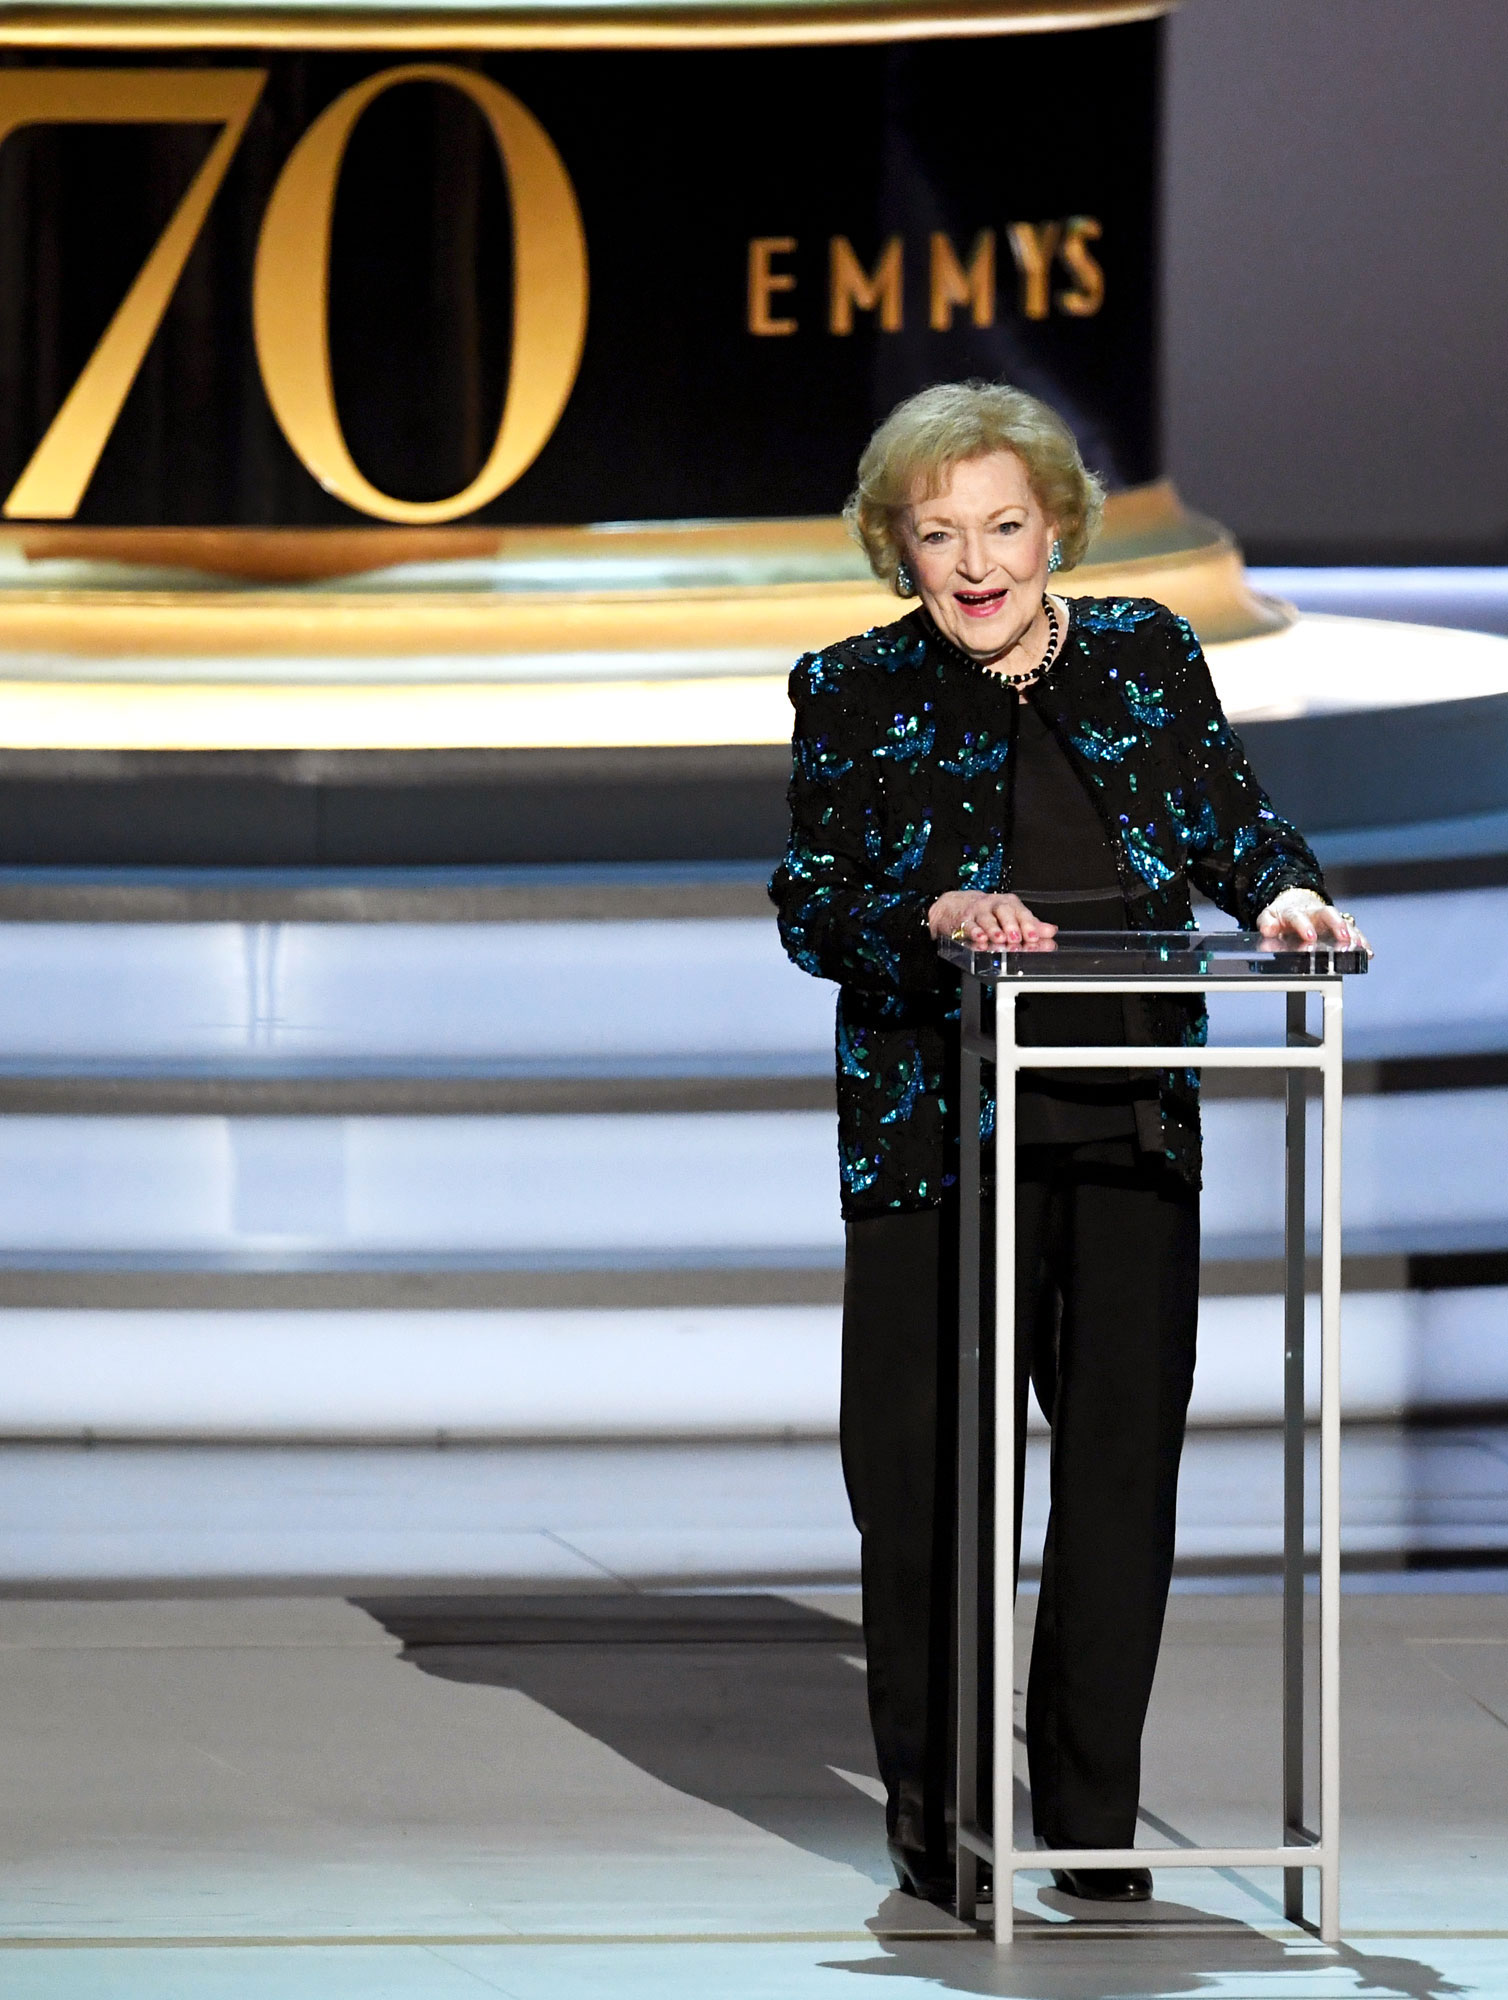 "Betty White's Best Moments - The then-96-year-old was honored at the 2018 Emmy Awards for being one of the oldest winners in the awards show's history. ""Little did I dream then that I would be here and it's incredible that I'm still in this business, that you're still putting up with me,"" she said during her speech at the September 2018 ceremony."